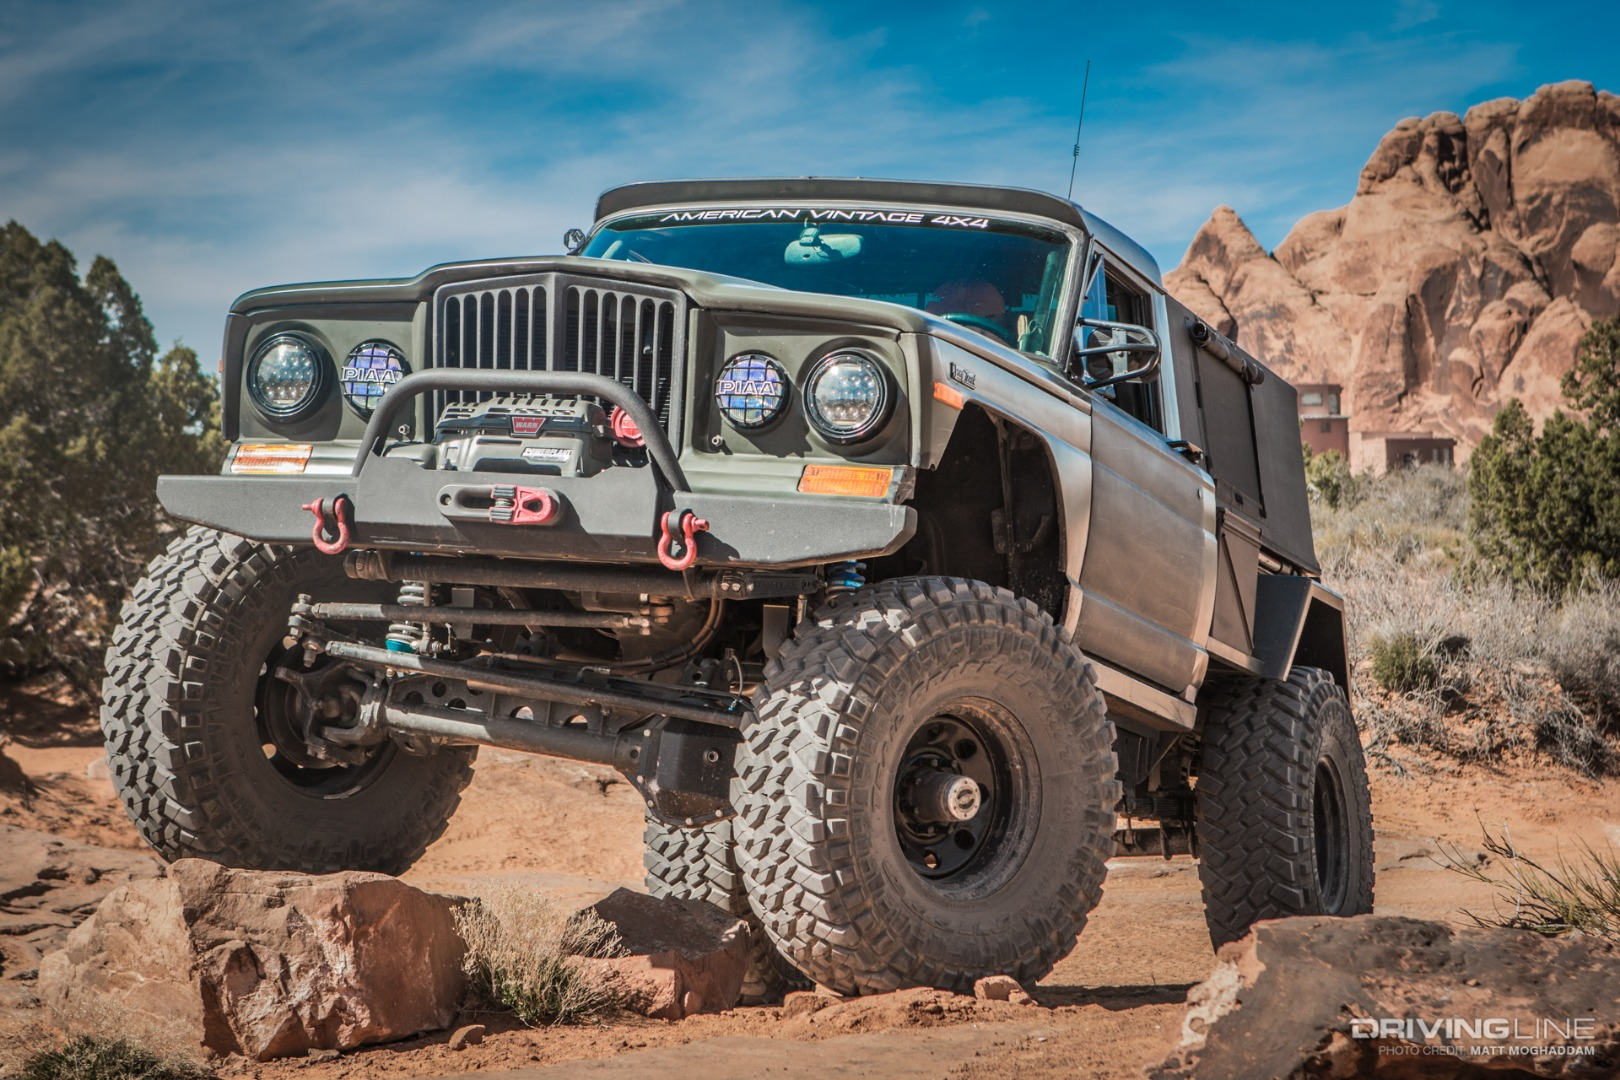 Enter the Dragon: A Closer Look at American Vintage 4x4's